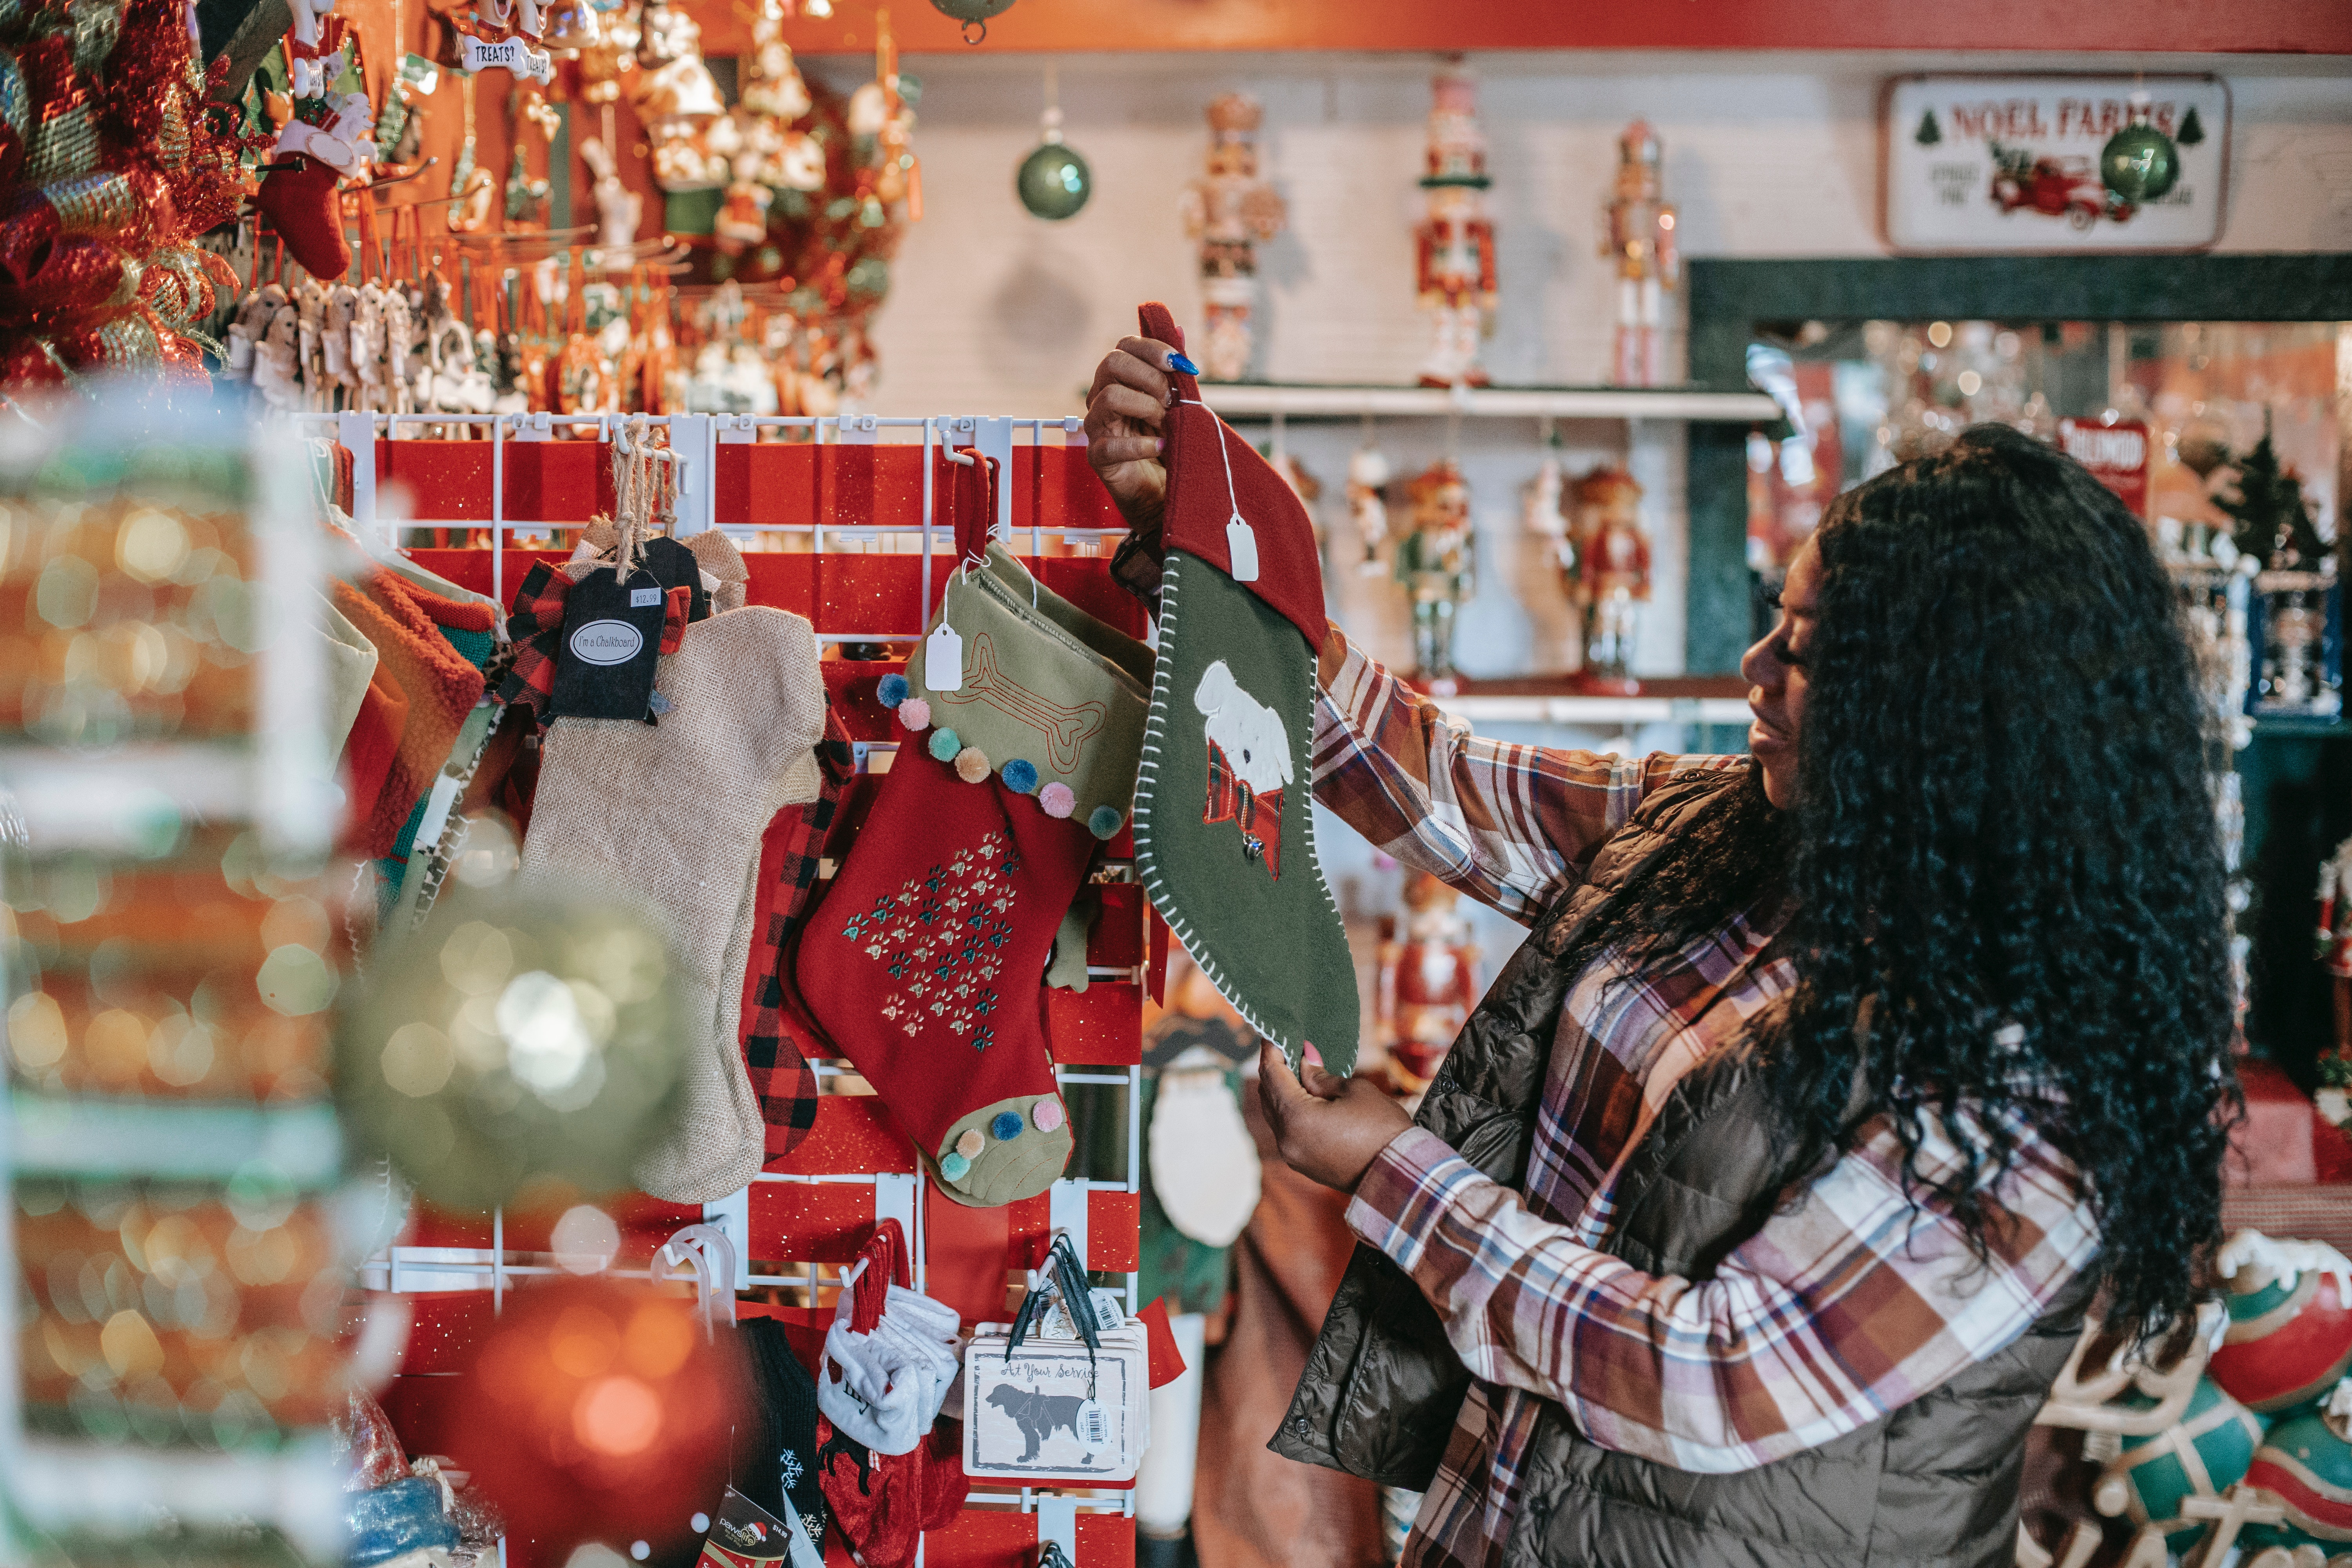 Supply Chain on the Verge of Collapse Ahead of the Holiday Season